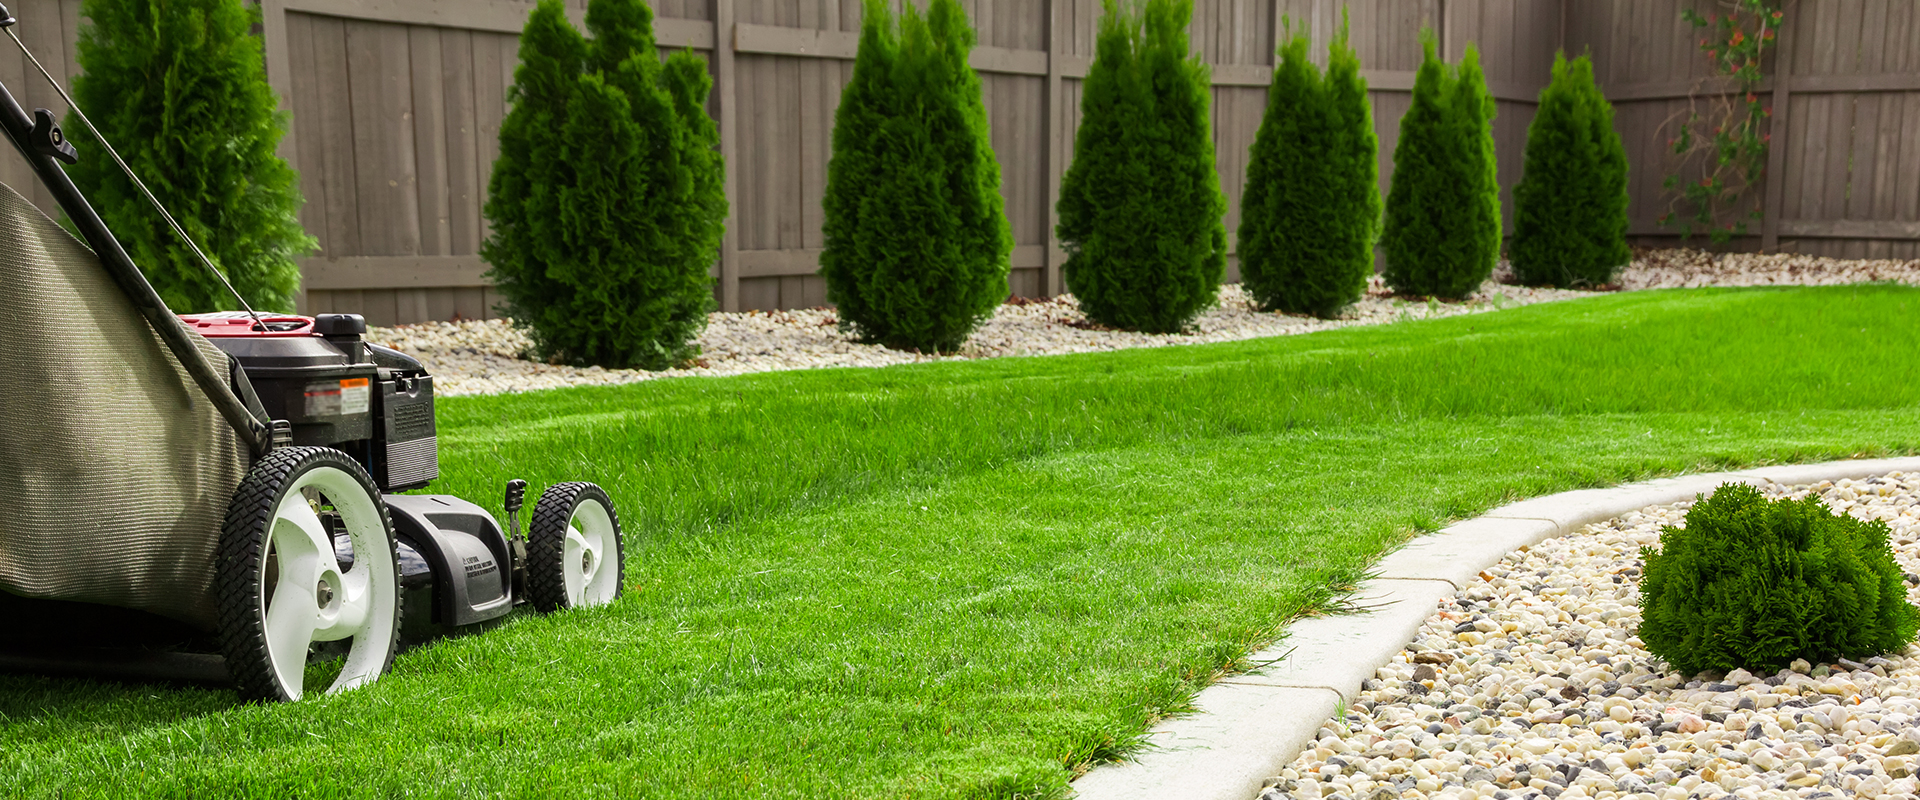 uv-landscaping-home-lawn-care-feature